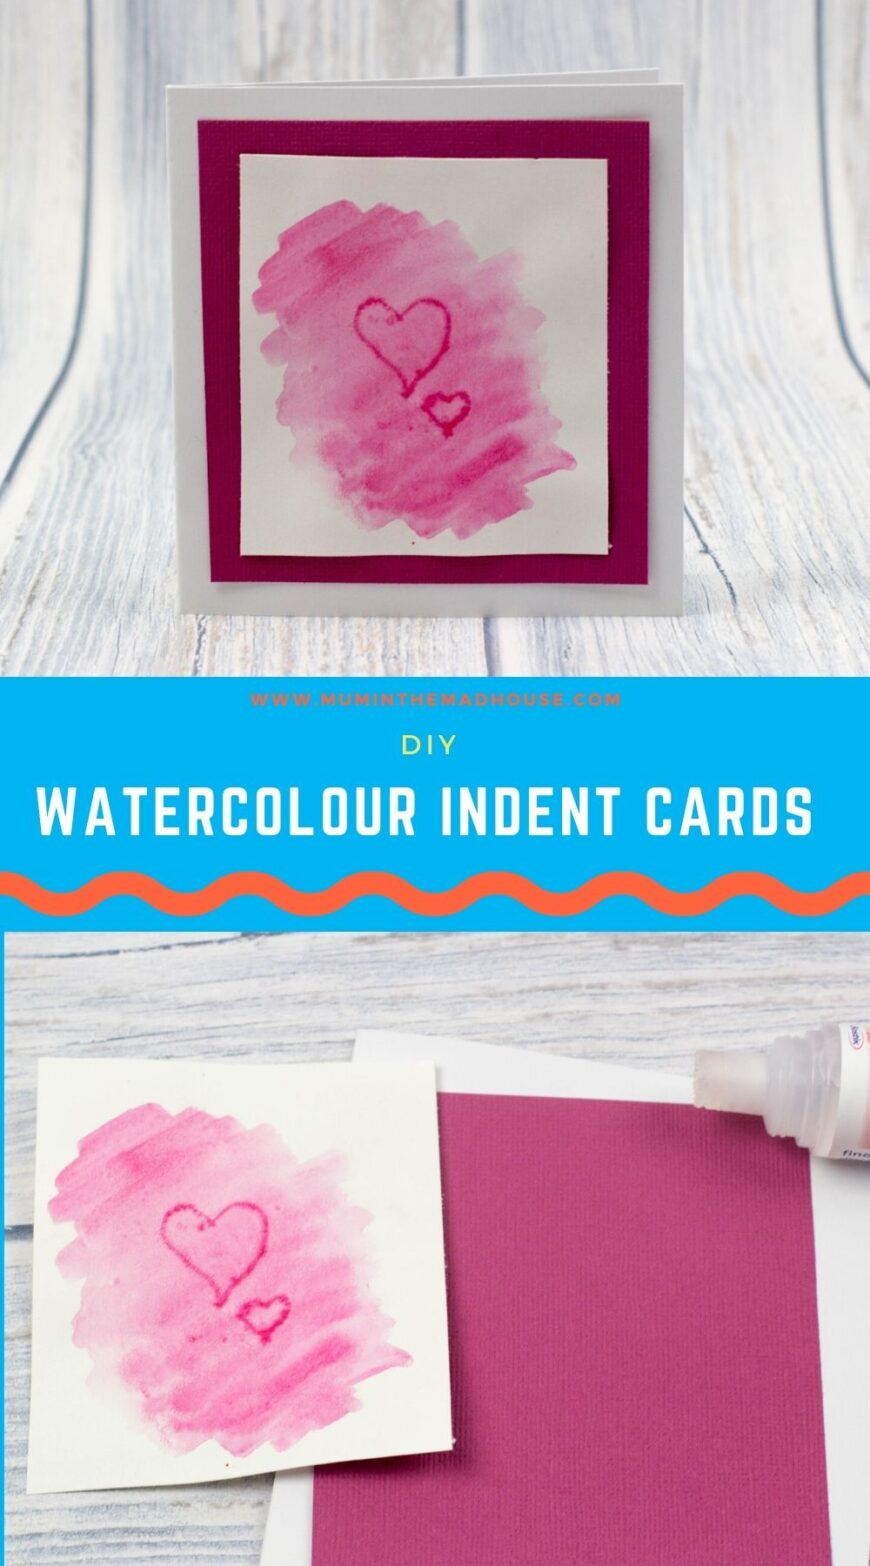 Making watercolor brush indent cards is so fun to do.